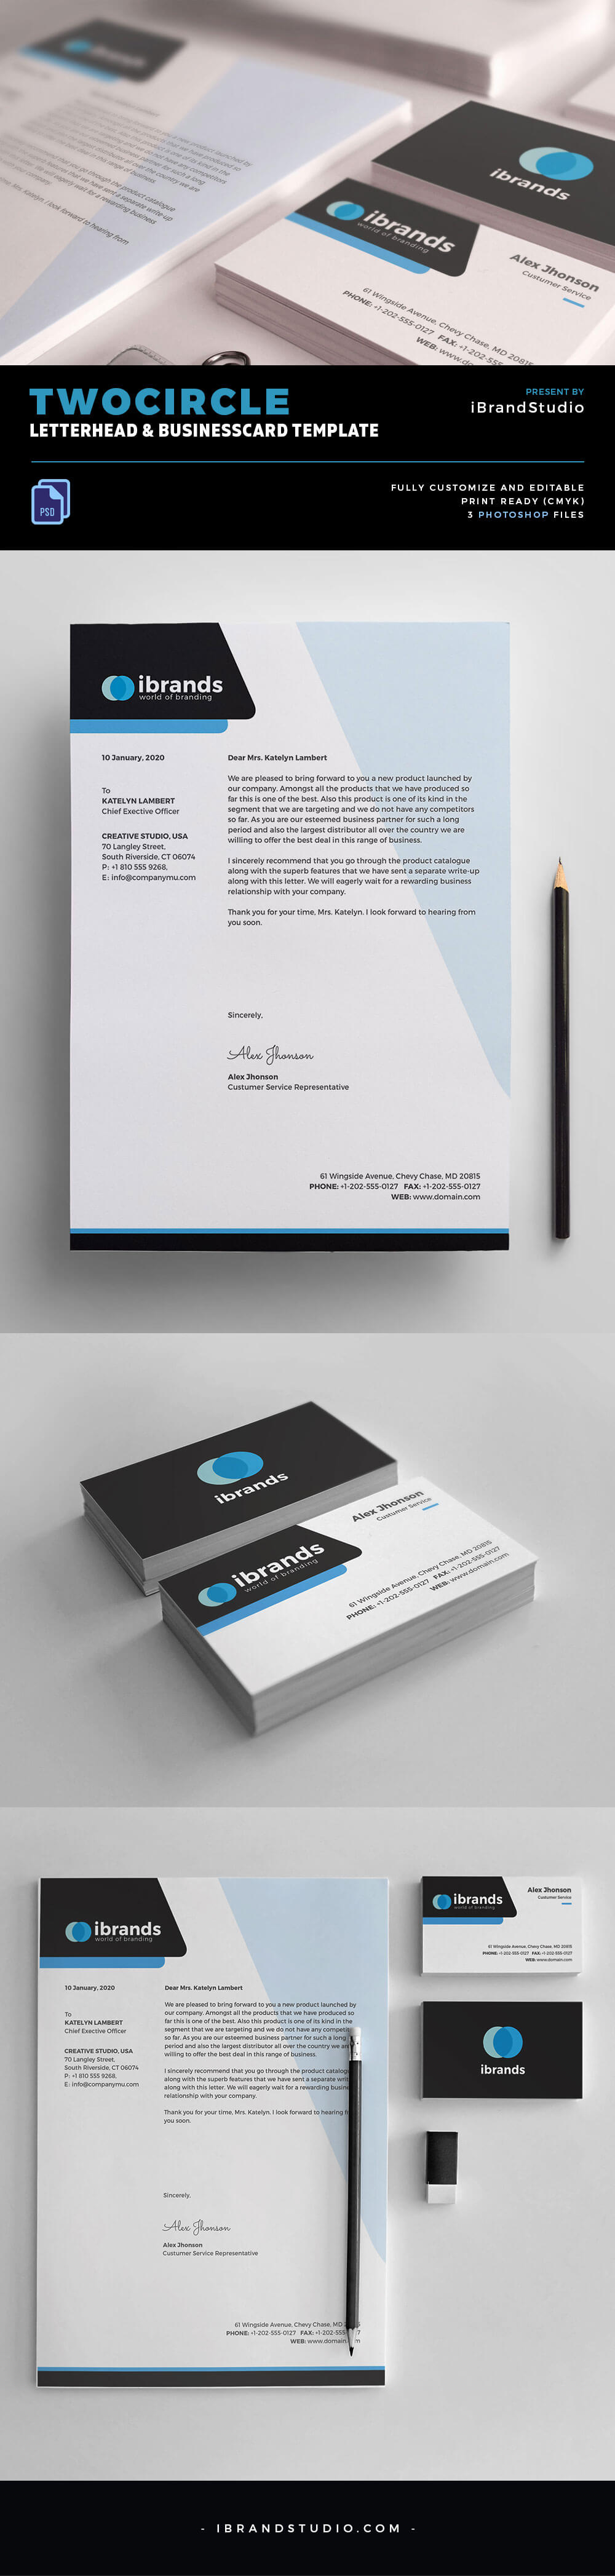 Two Circle Free Business Card Template PSD